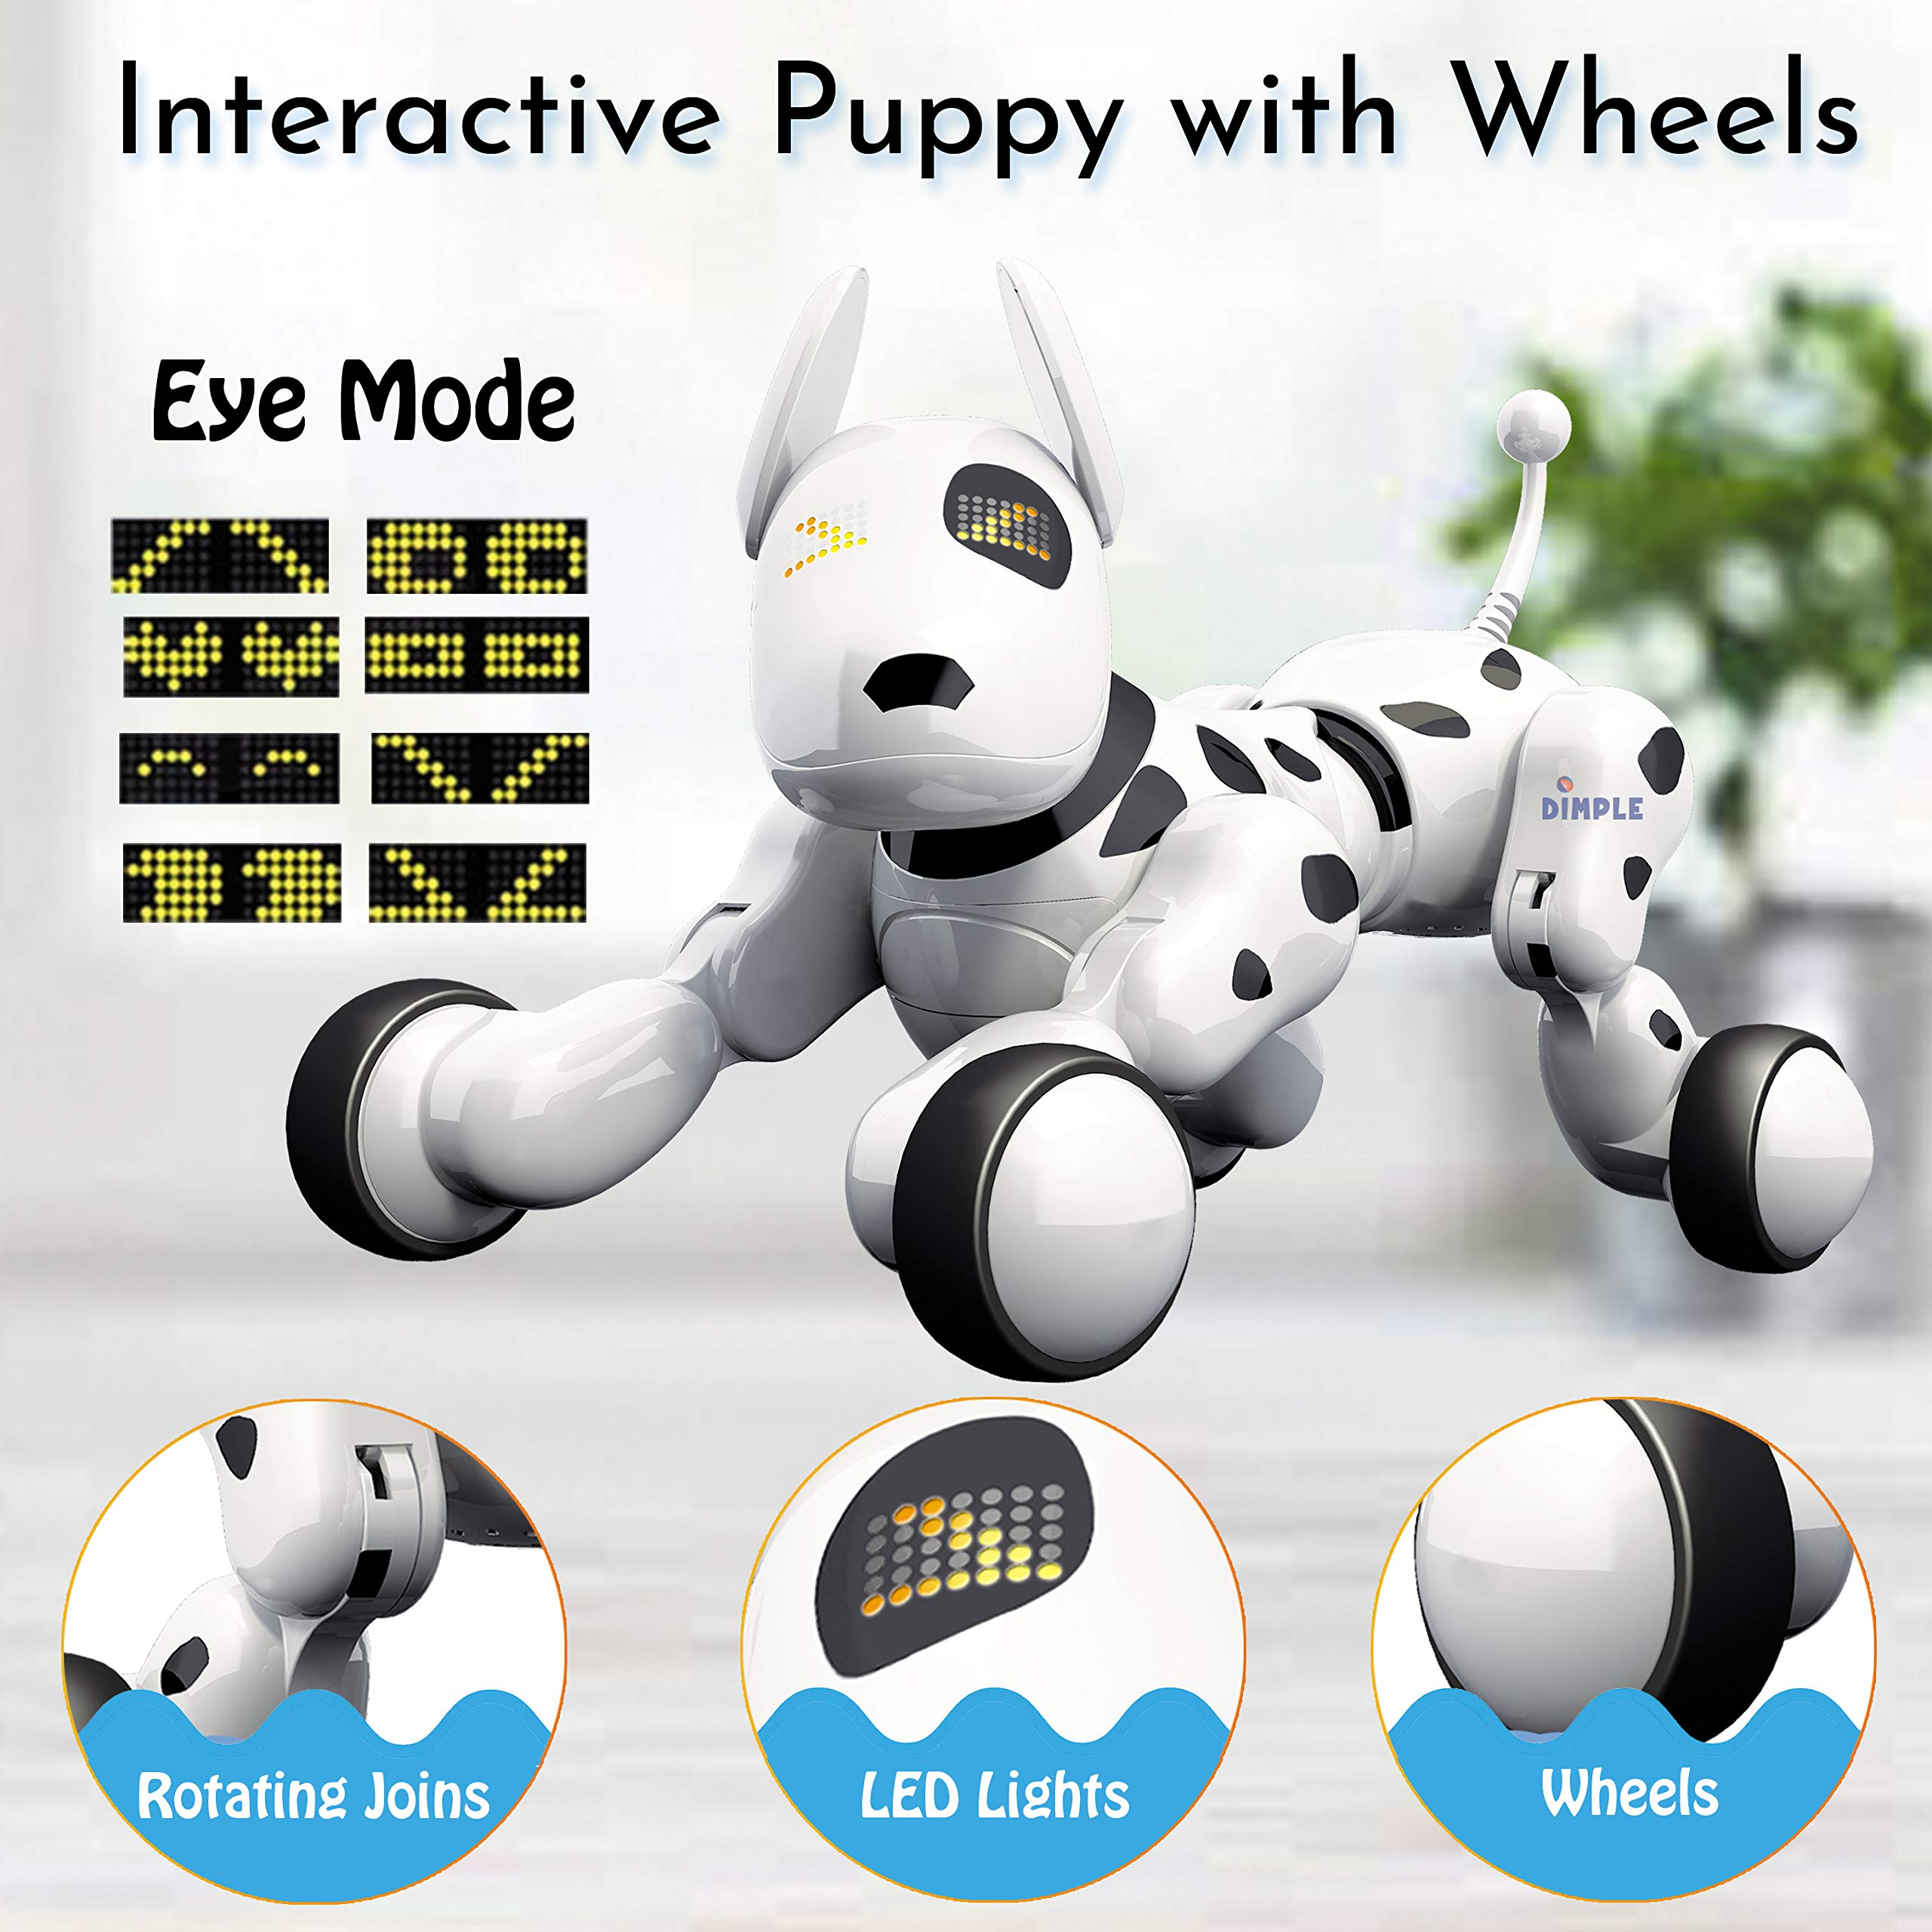 Dimple Interactive Robot Puppy With Wireless Remote Control RC Animal Dog Toy That Sings, Dances, Eye Mode, Speaks for Boys/Girls, Perfect Gift for Kids. by Dimple (Image #9)